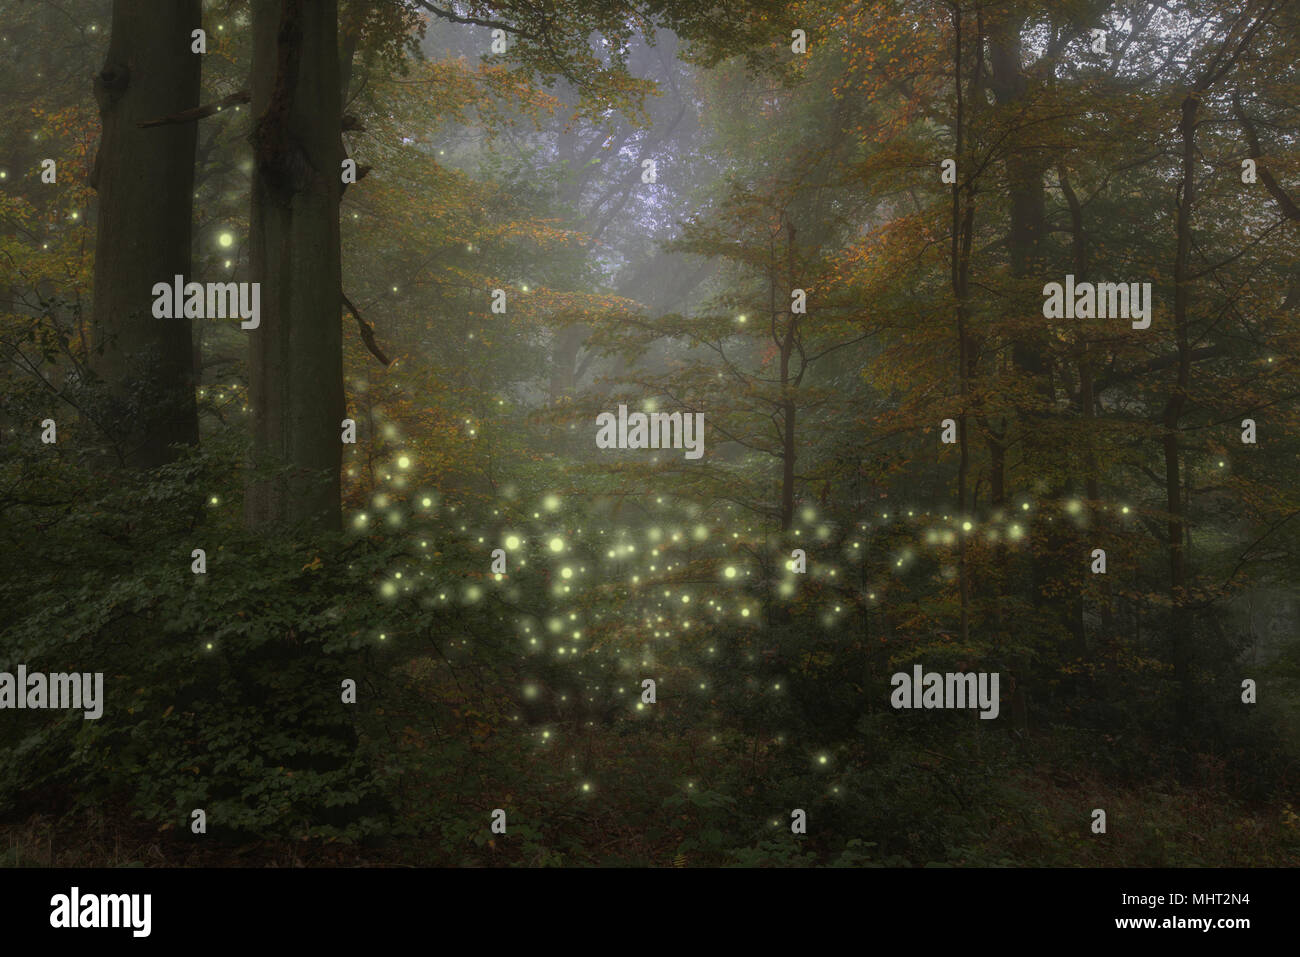 Stunning fantasy style landscape image of fireflies glowing in night time forest scene - Stock Image